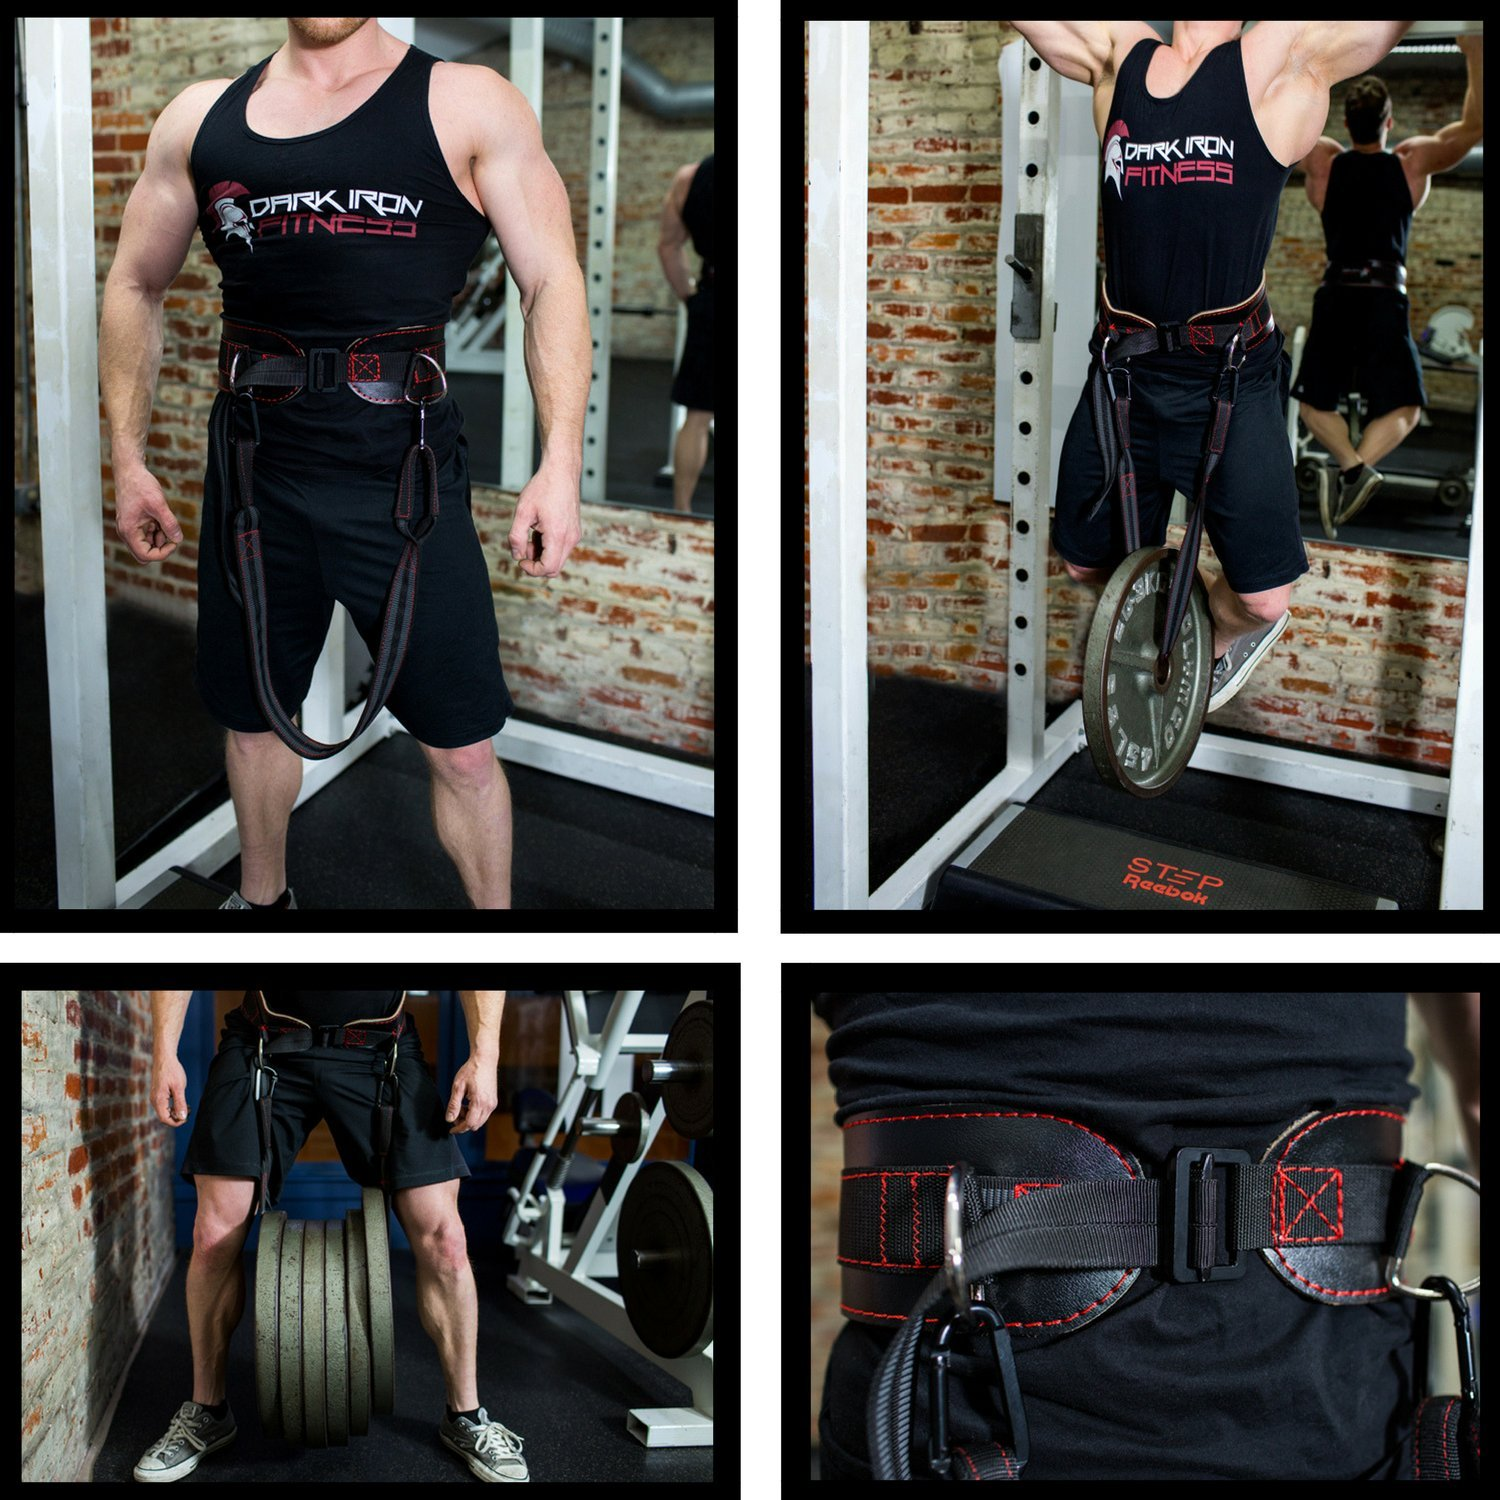 Accessories to Help Perfect Your Squats - Dark Iron Fitness Dip Belt